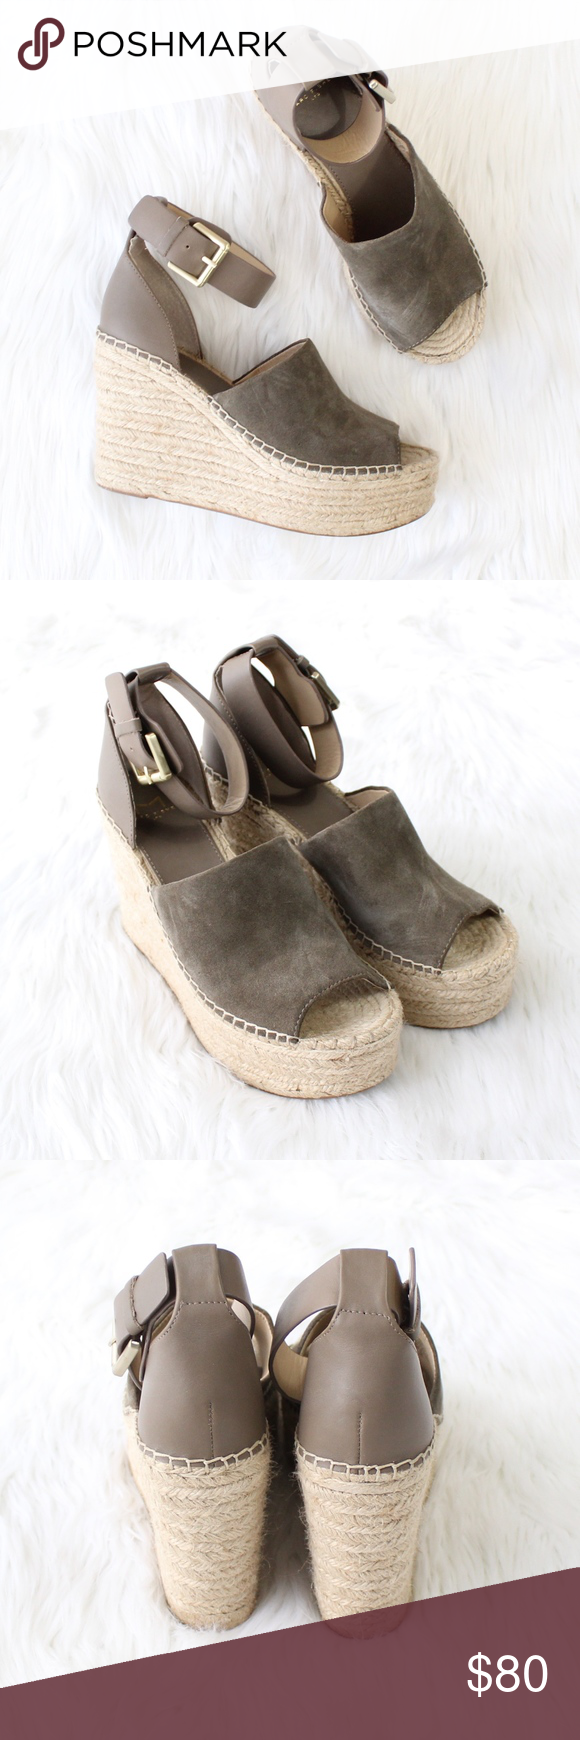 2d86a255133 MARC FISHER Adalyn Espadrille Wedge Sandal in Grey Gently used condition!  Size  7 Color